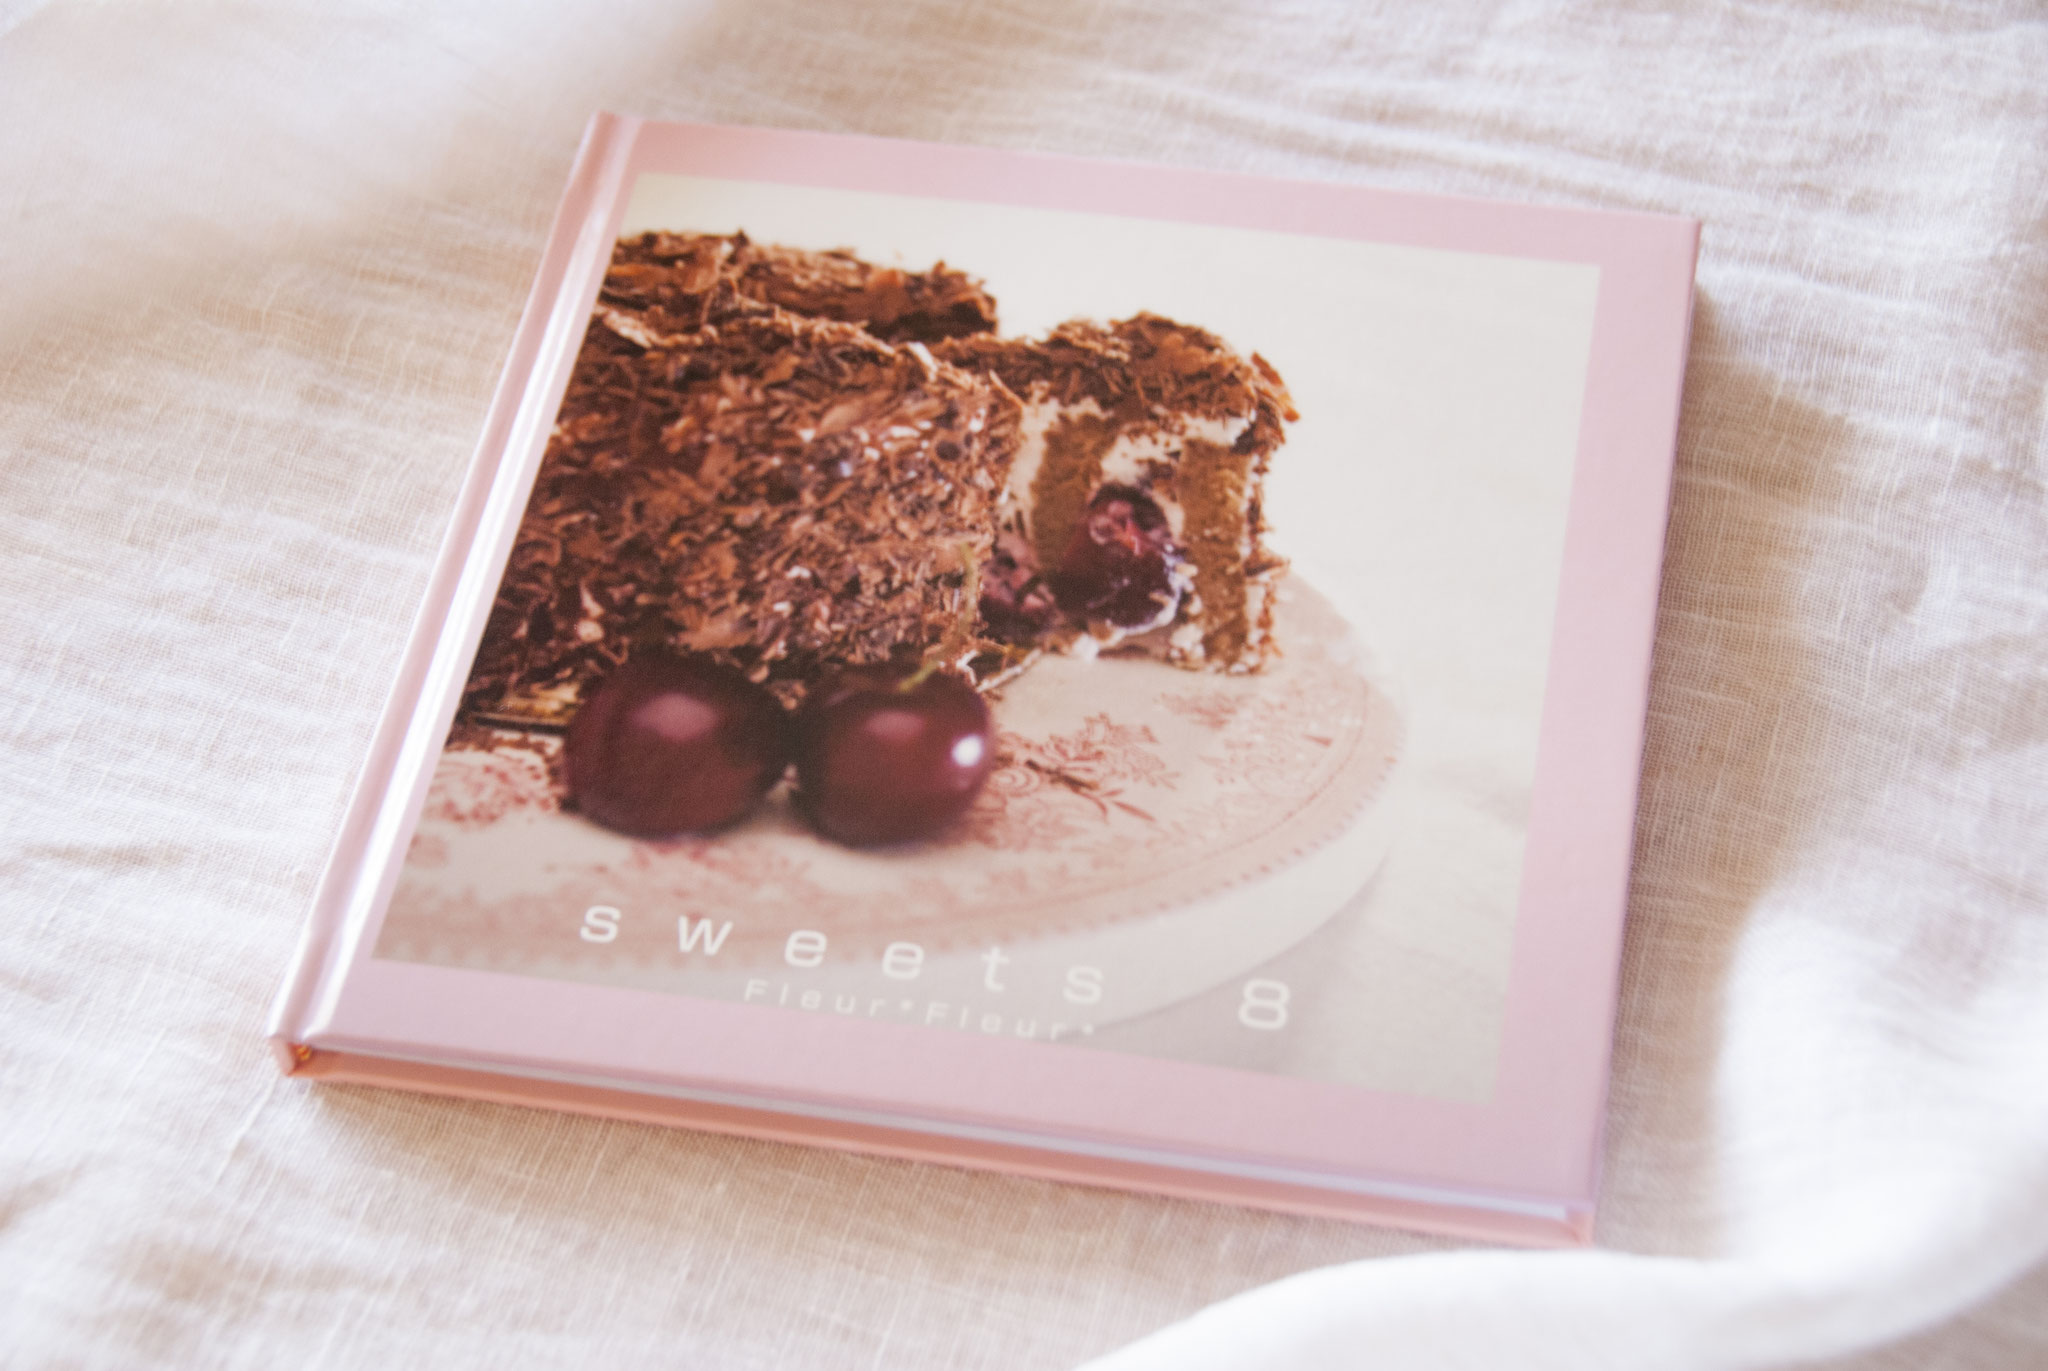 Sweets 8, 20cm Square Photo book printed with DreamLabo 5000, Fleur*Fleur*